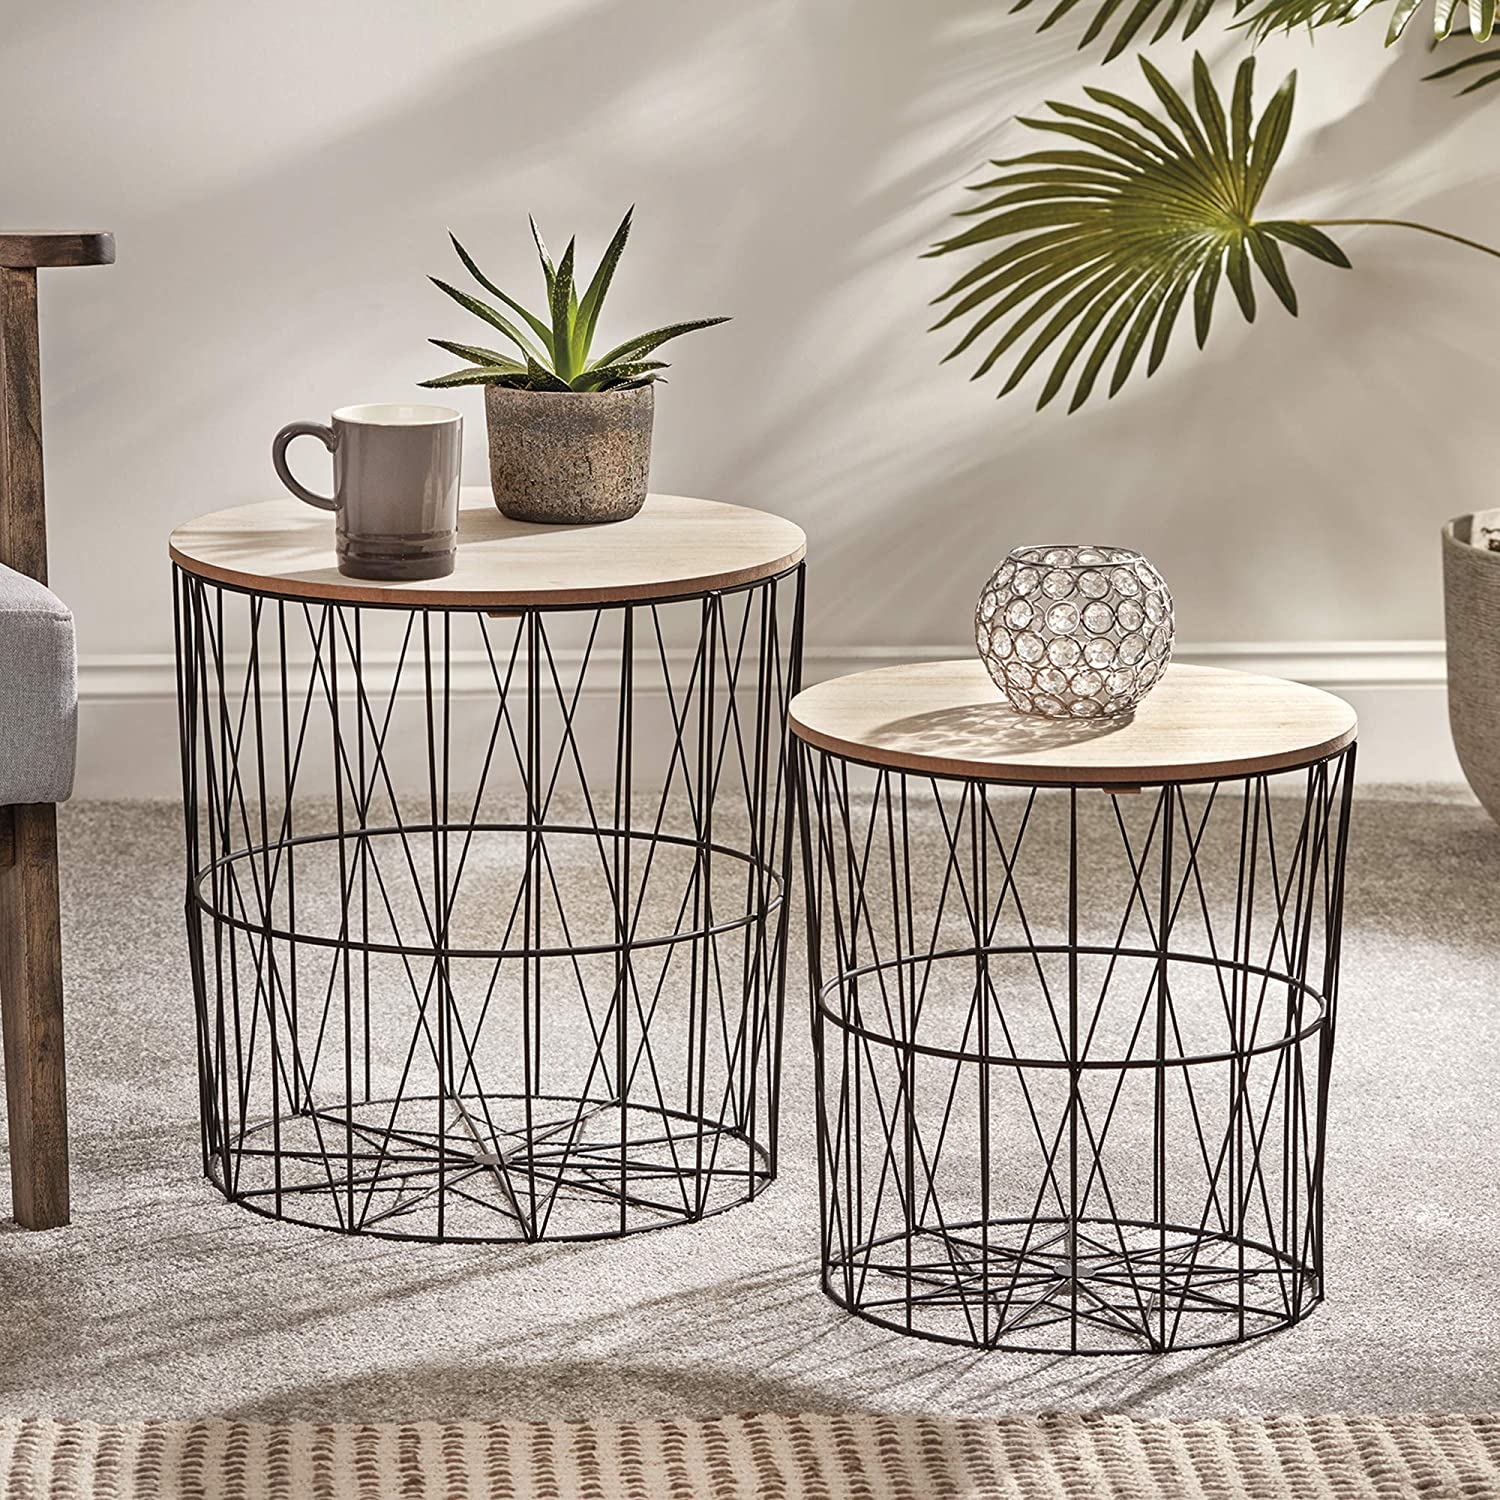 Your Home 2 Metal Wire Coffee Tables, Geometric Design, Occasional Side Table with Round Removable Top for Storage (Rose Gold) Black